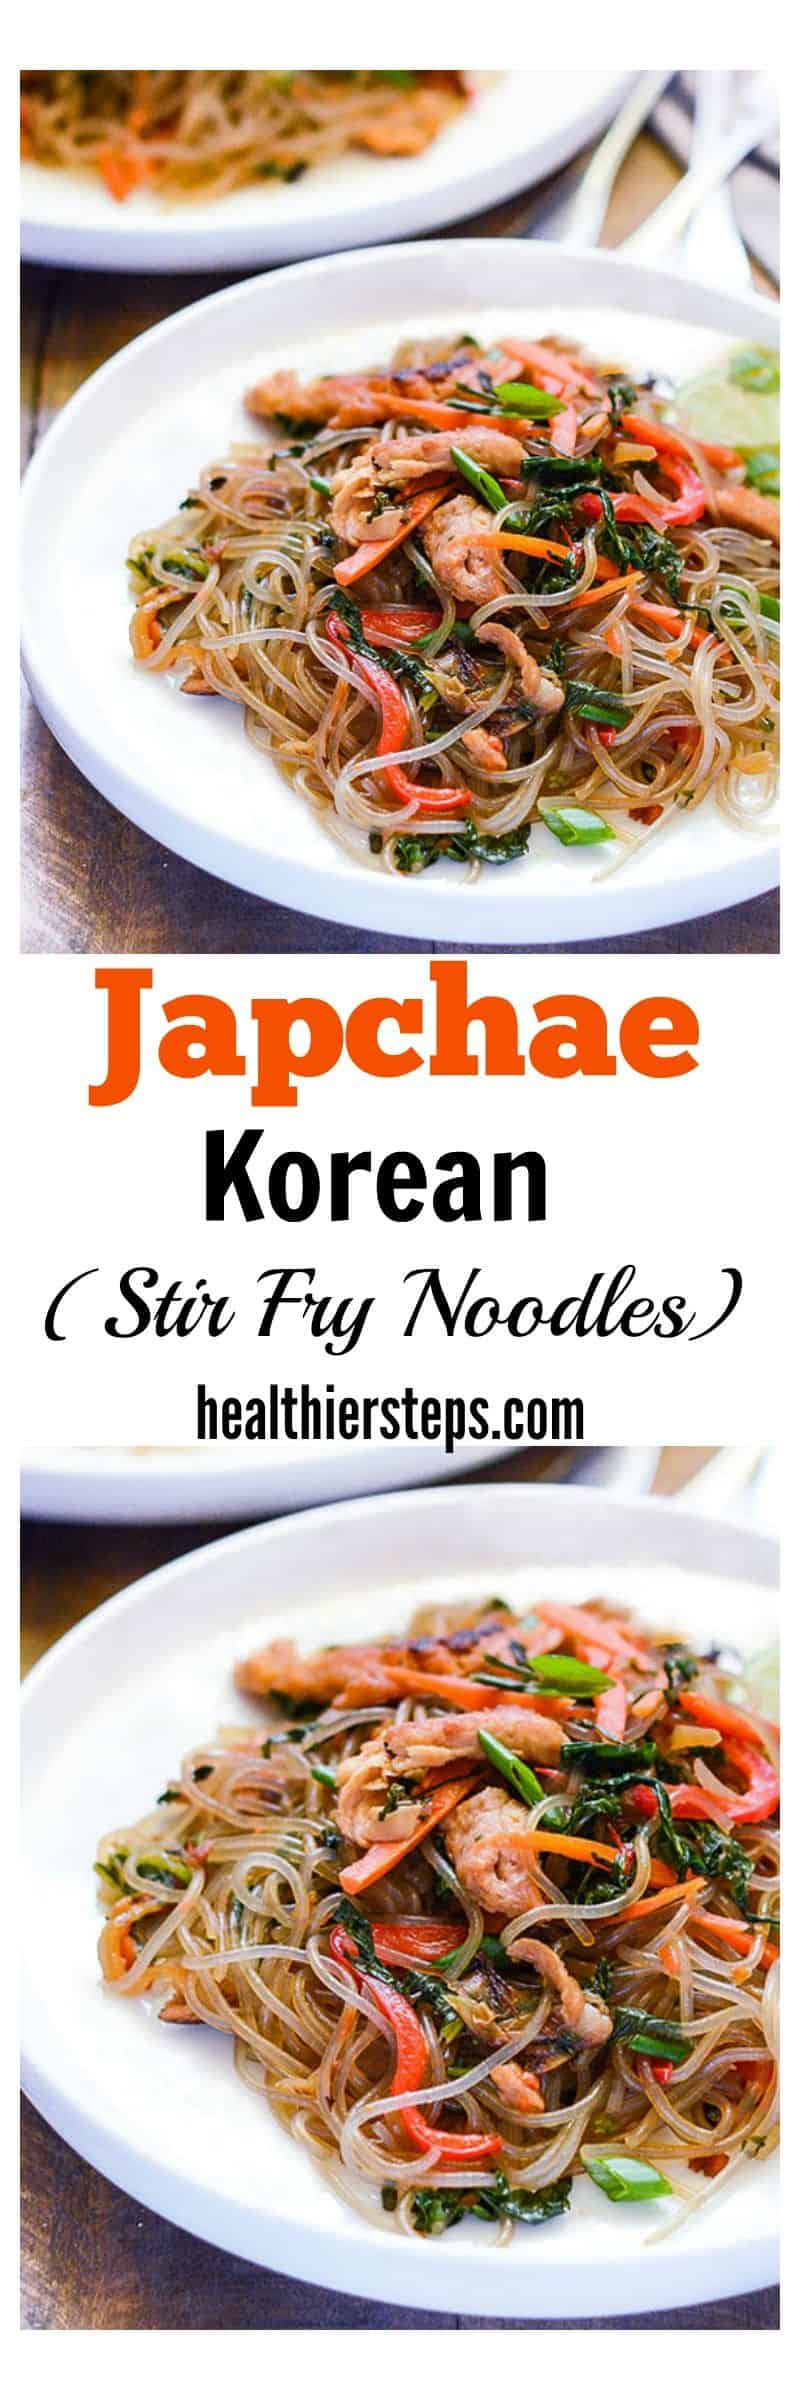 Japchae Korean Stir Fry Noodles